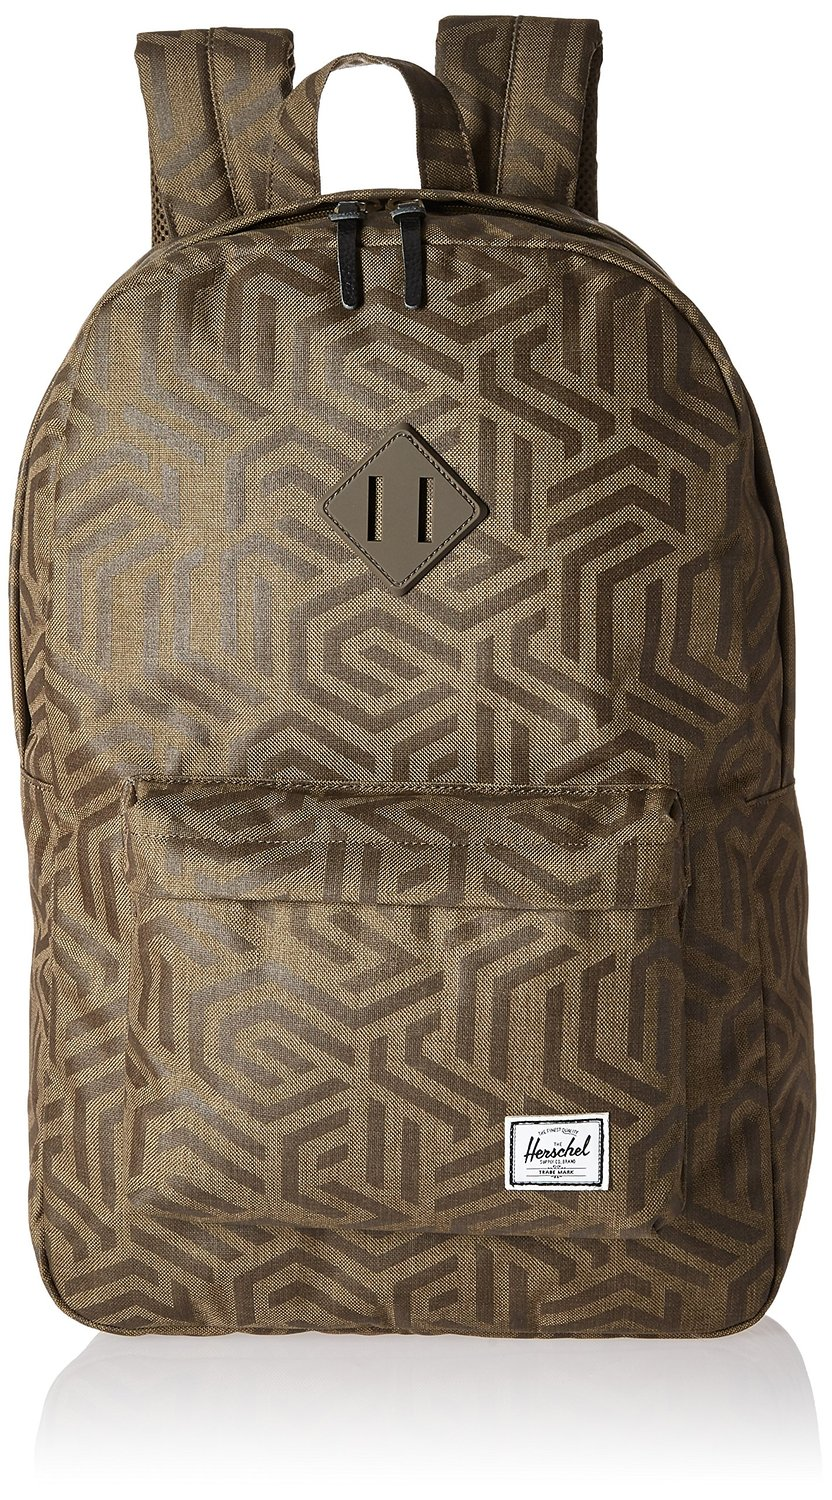 04e93a3e371 Get Quotations · Herschel Heritage Backpack Metric Mens One Size